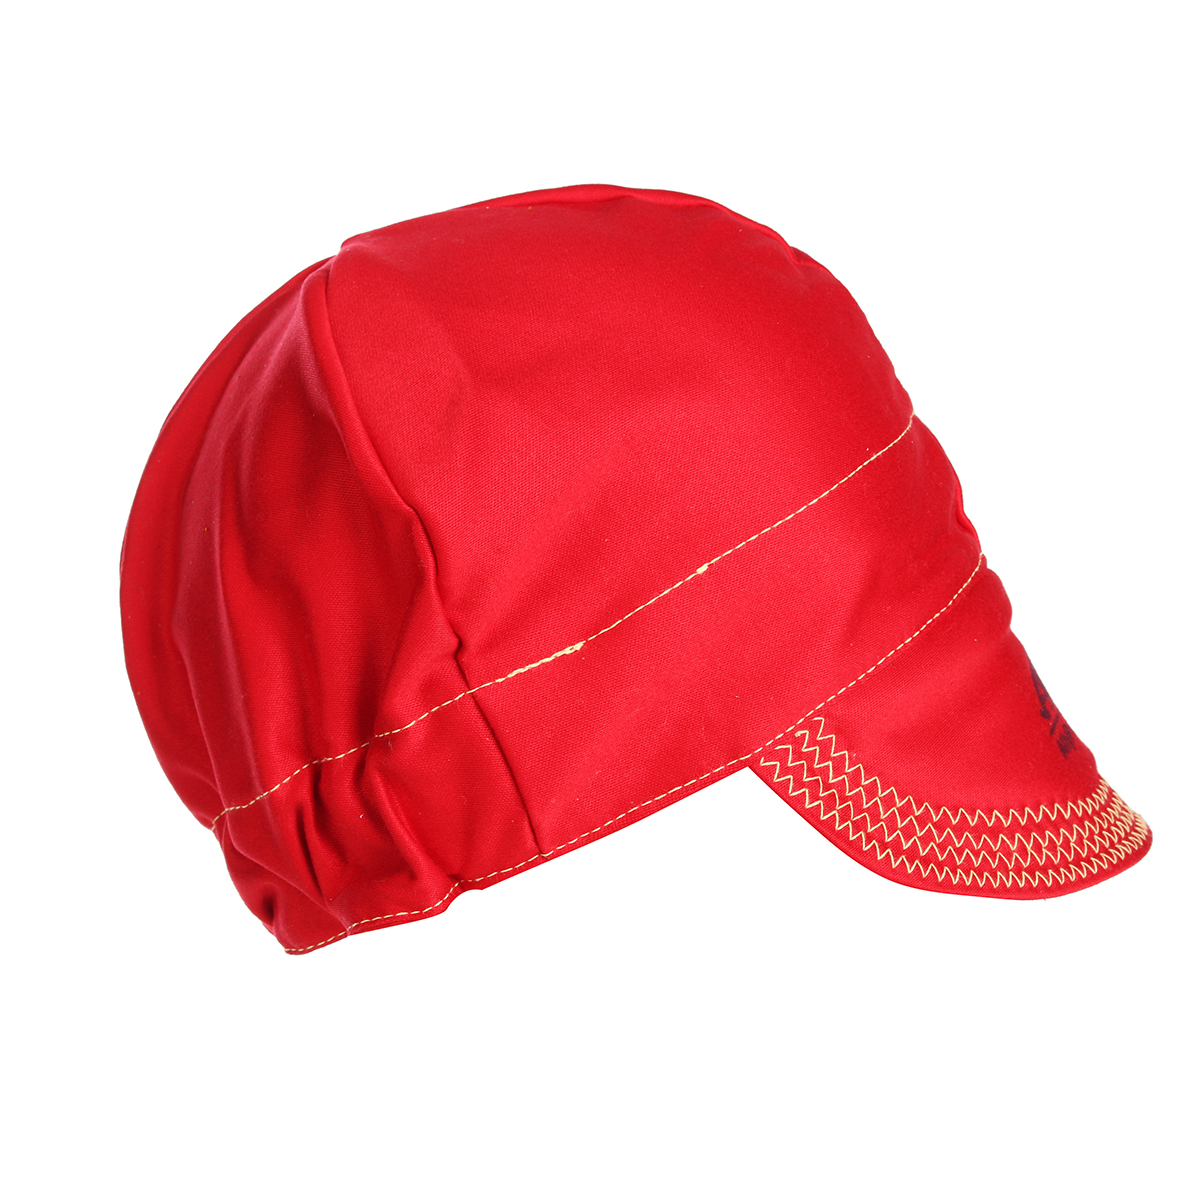 Universal Elastic Welding Flame Retardant Cloth Hat Cap Head Protect -RED